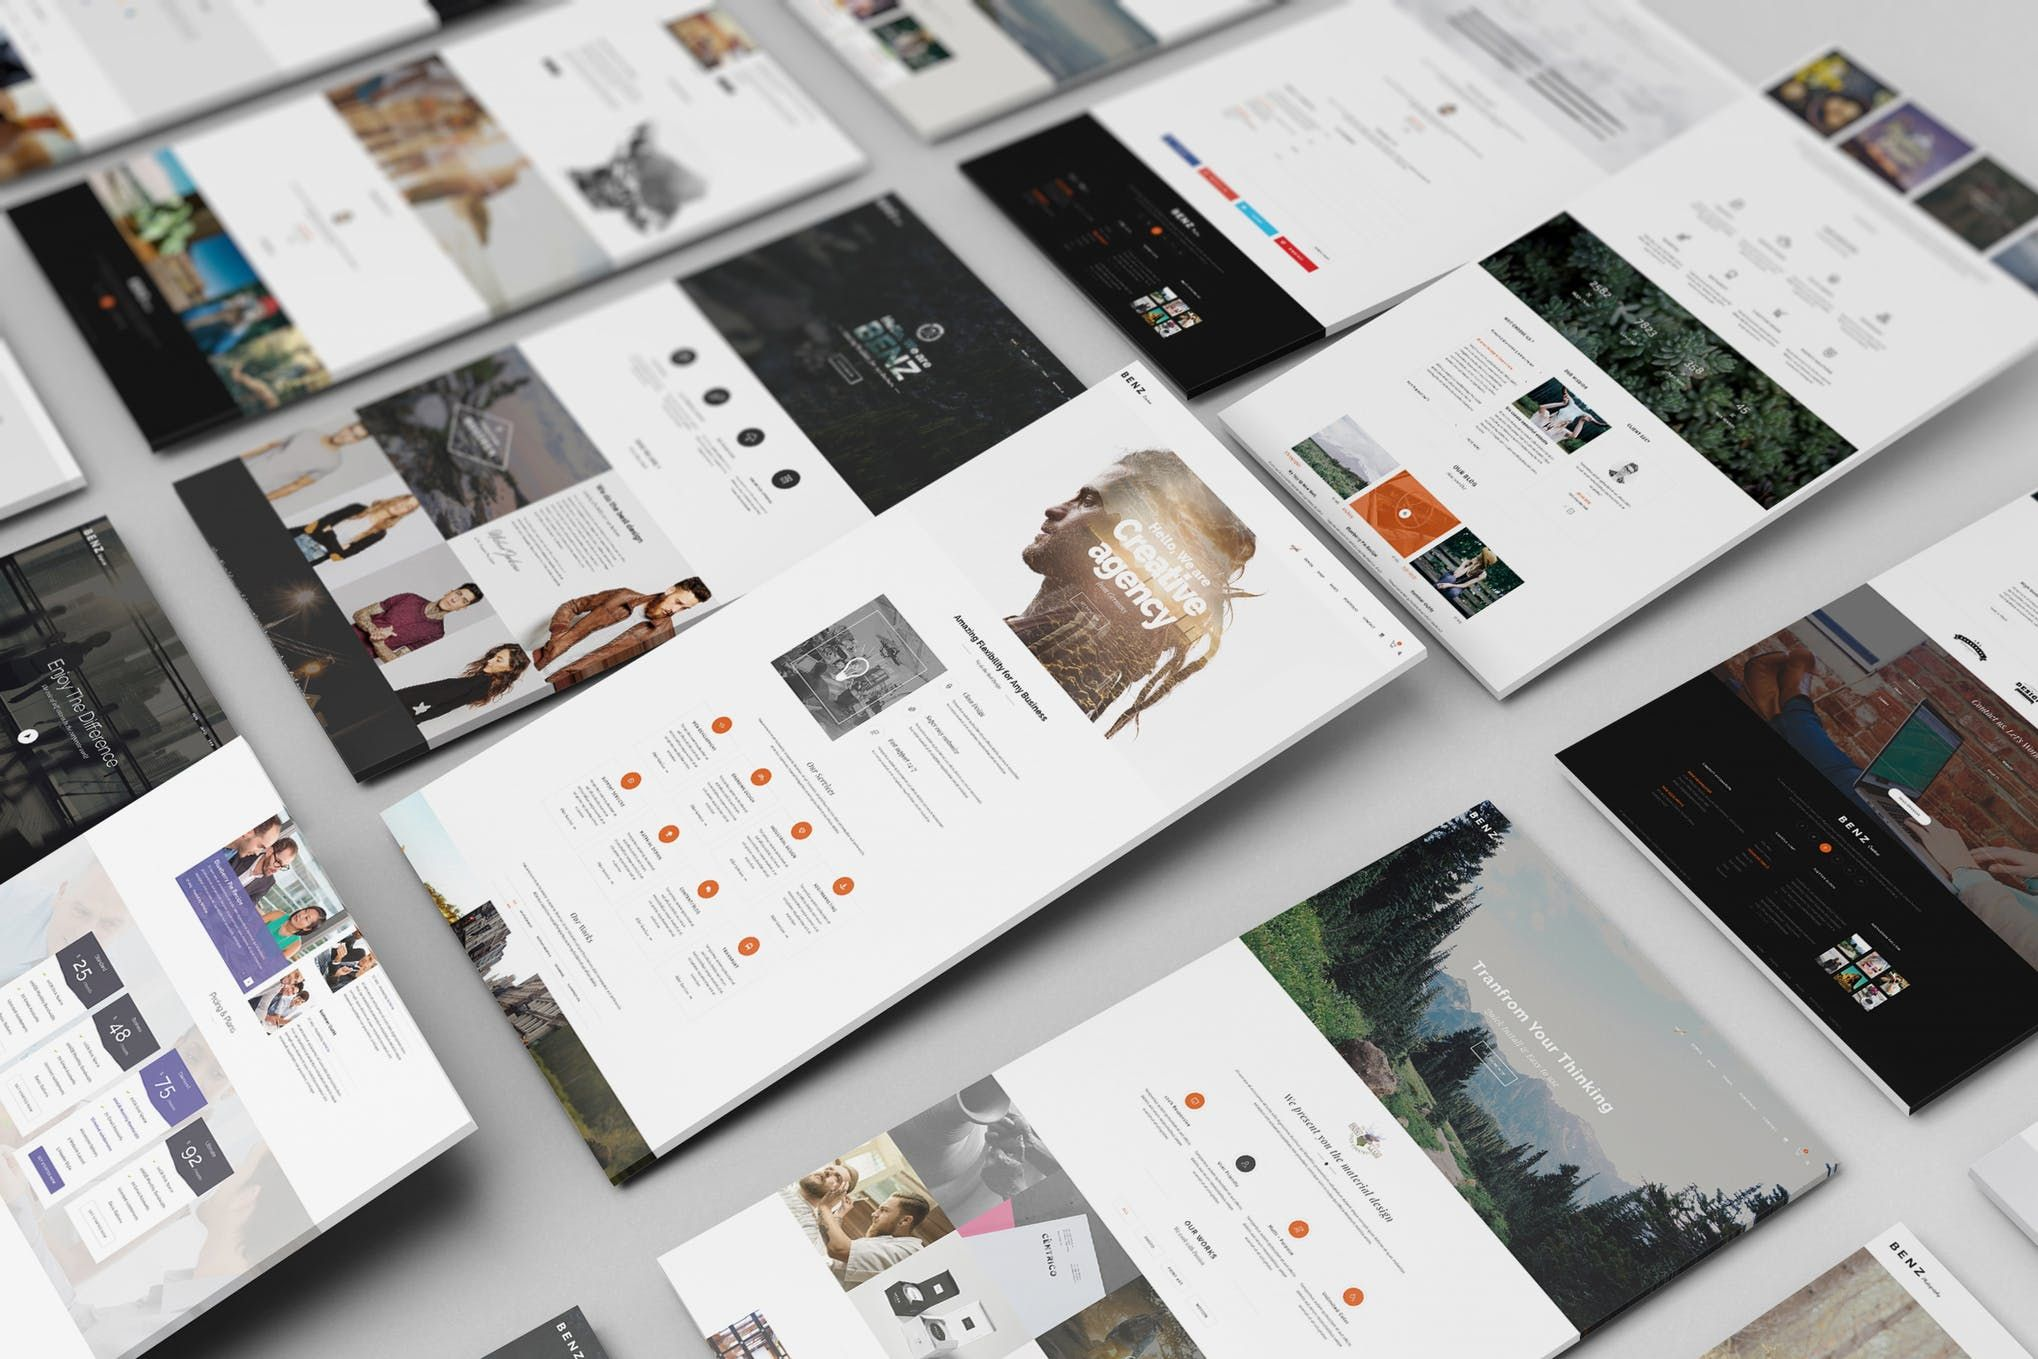 Perspective Web Mockup 08 By Wutip On Envato Elements Website Mockup Perspective Web Web Mockup